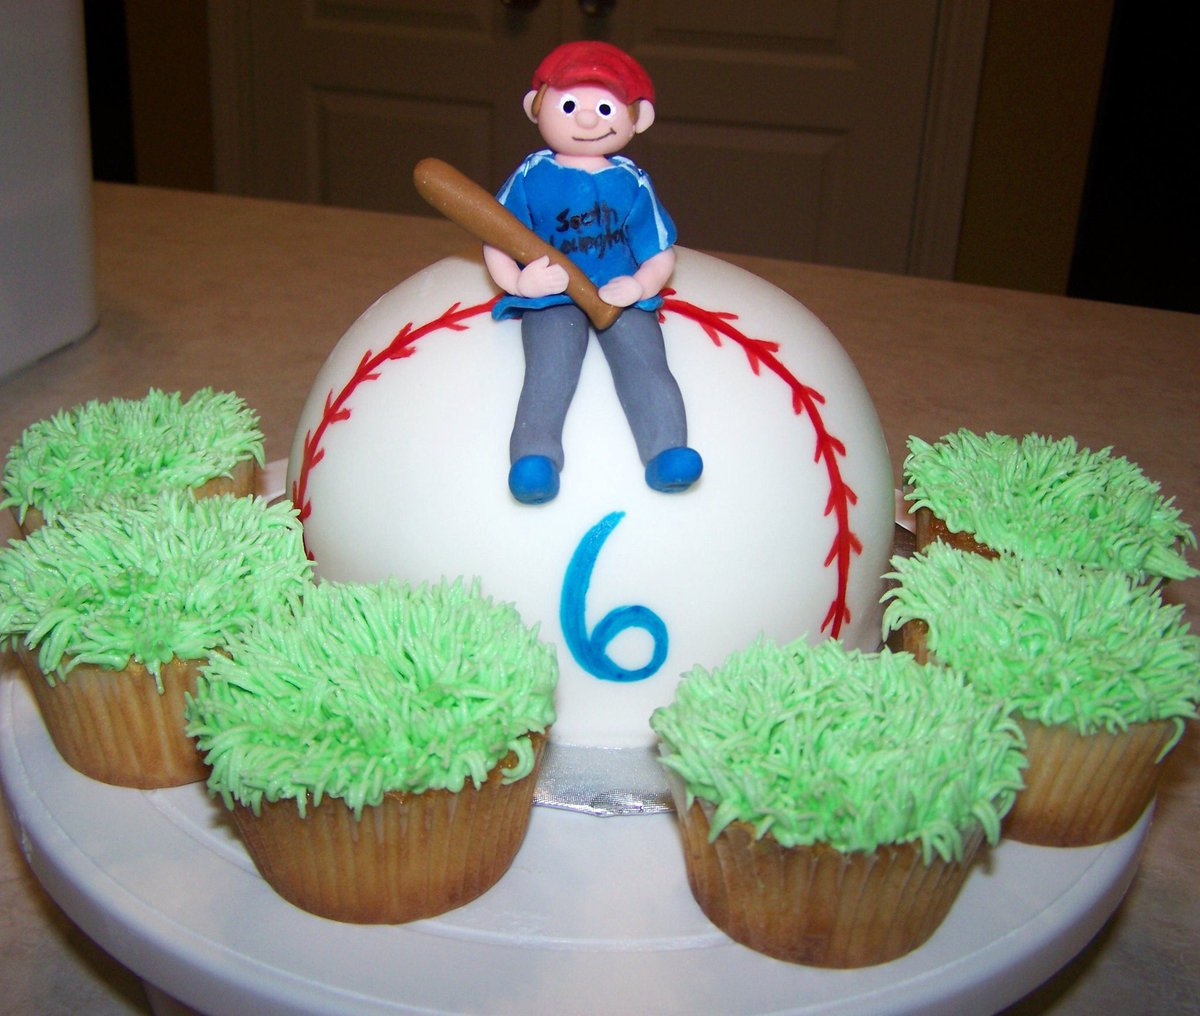 In Light Of Yesterdays Fair Elections Vote Instead A Big Birthday Cake Give Him One Cupcake And Well Spring For The Other Fivepictwitter